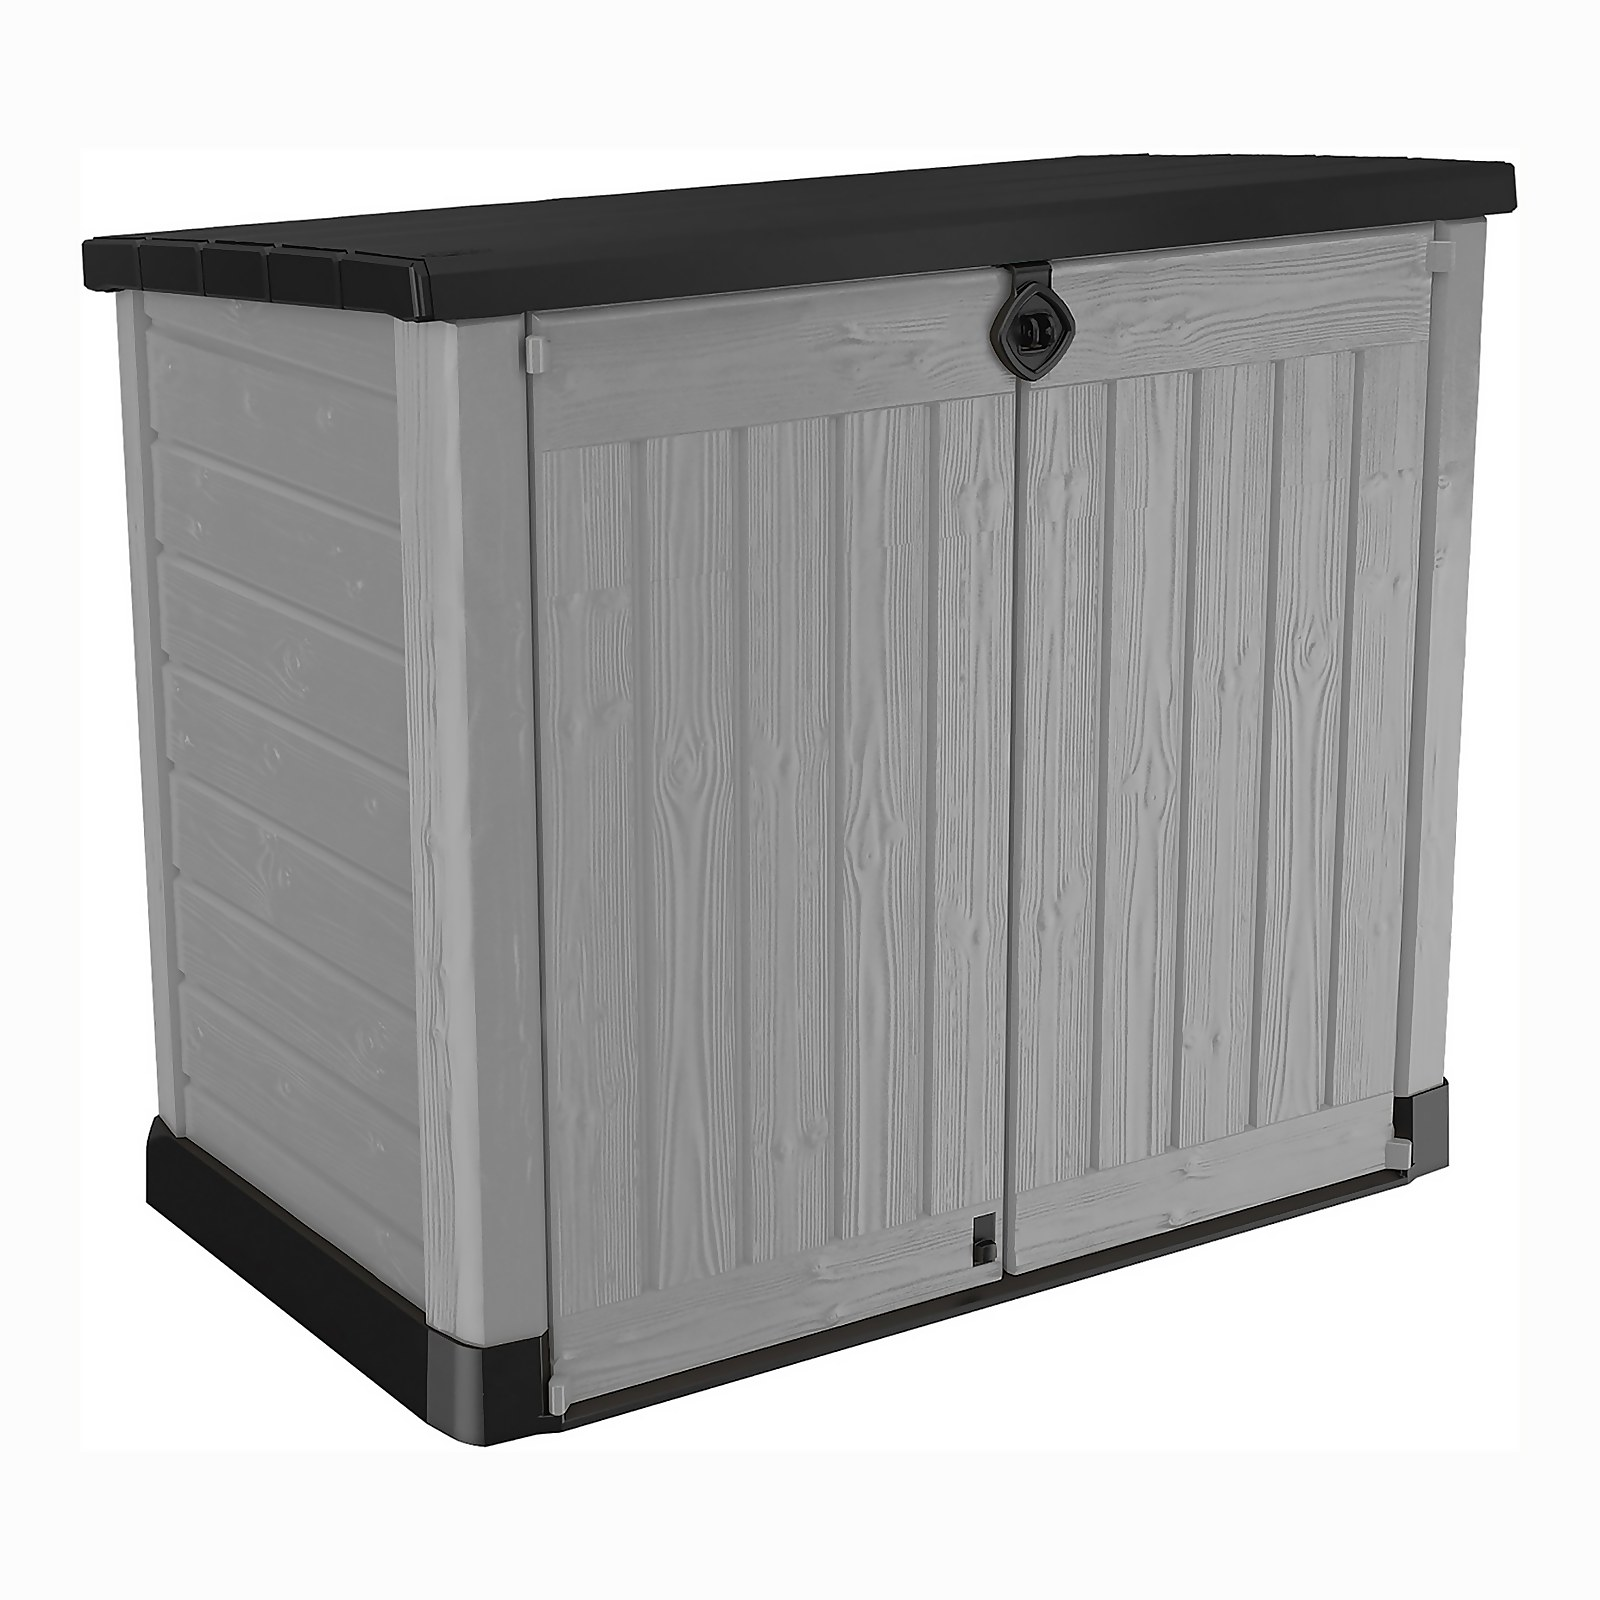 Keter Store It Out Ace Outdoor Garden Storage Shed 1200L - Grey / Graphite